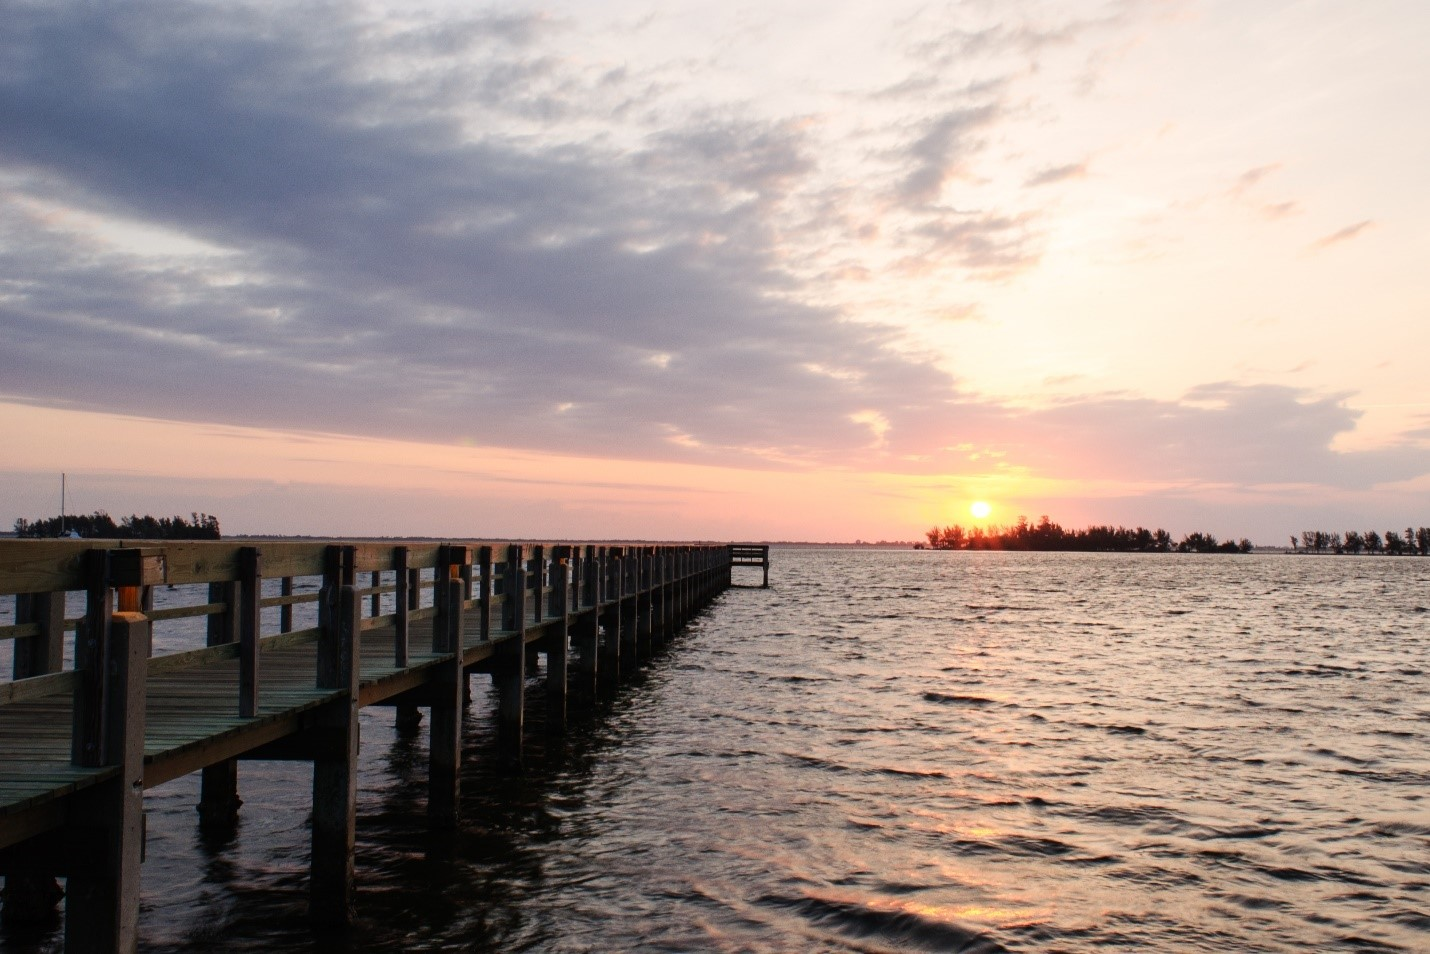 The sun rises over the Indian River Lagoon.